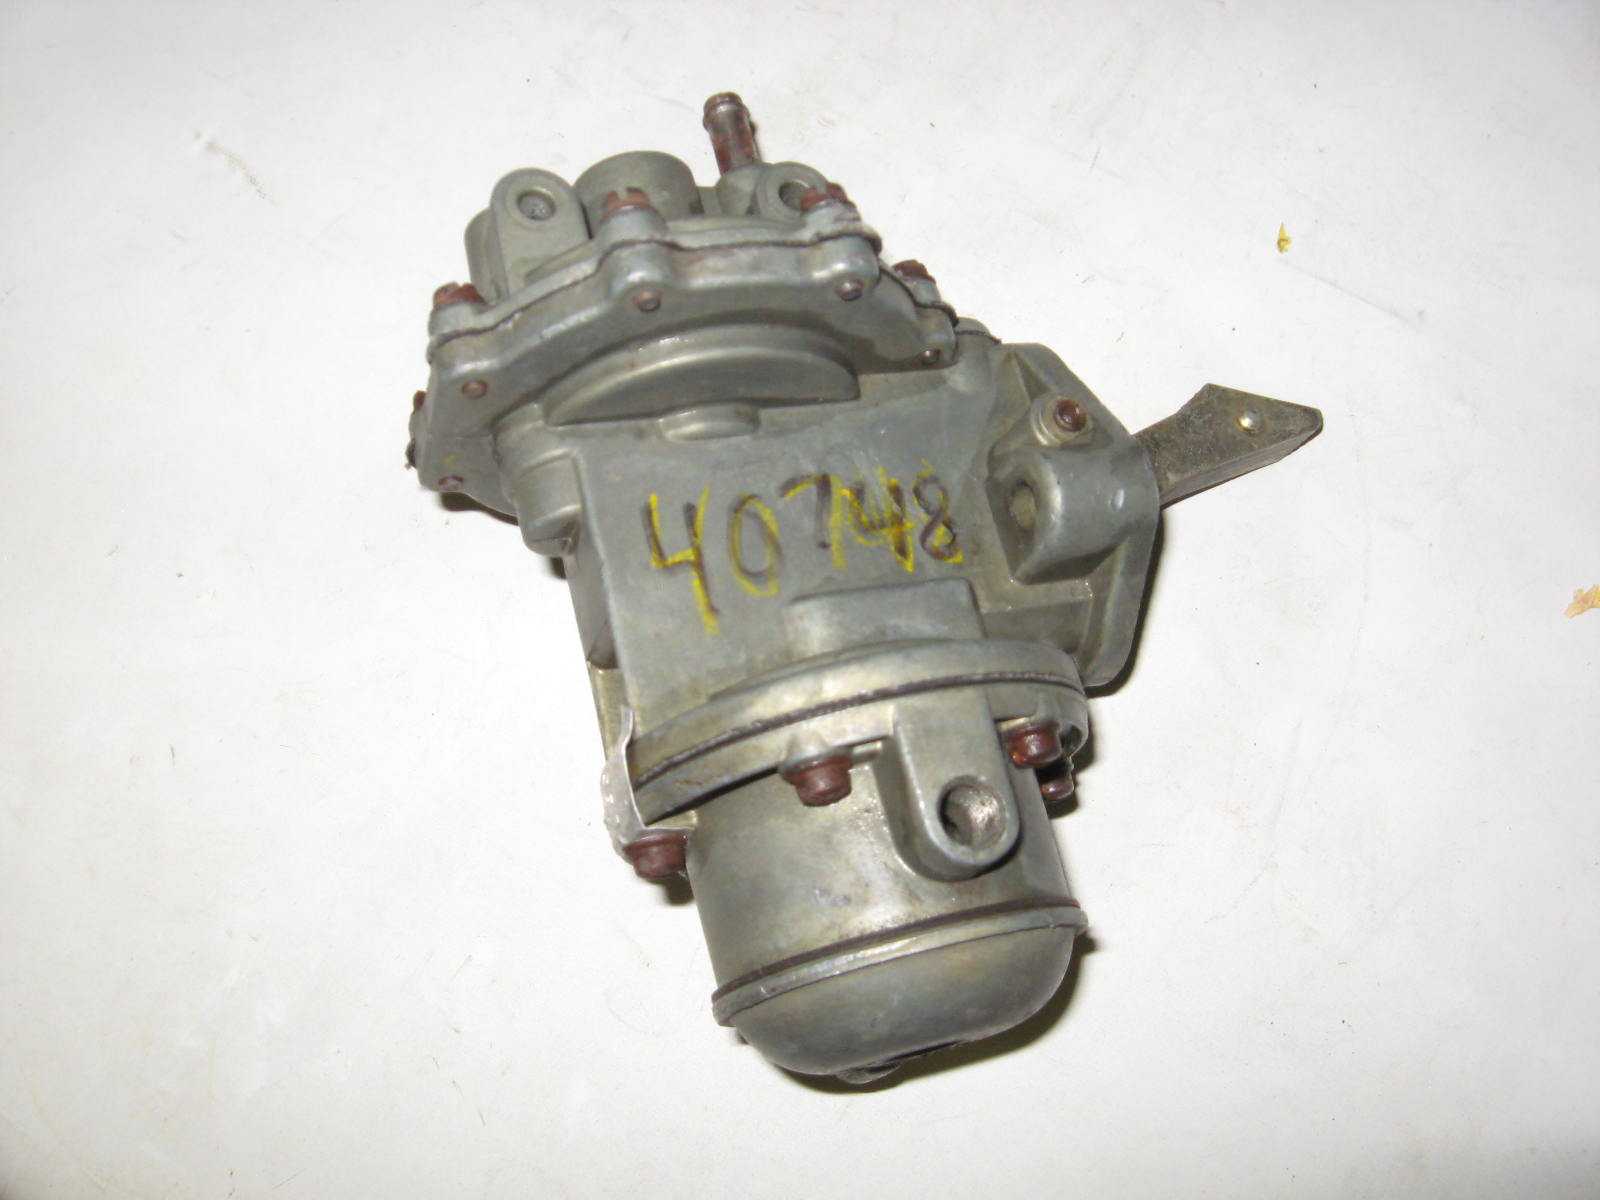 1964 Rambler Classic 230 double action fuel pump 40748 (a 40748xw)